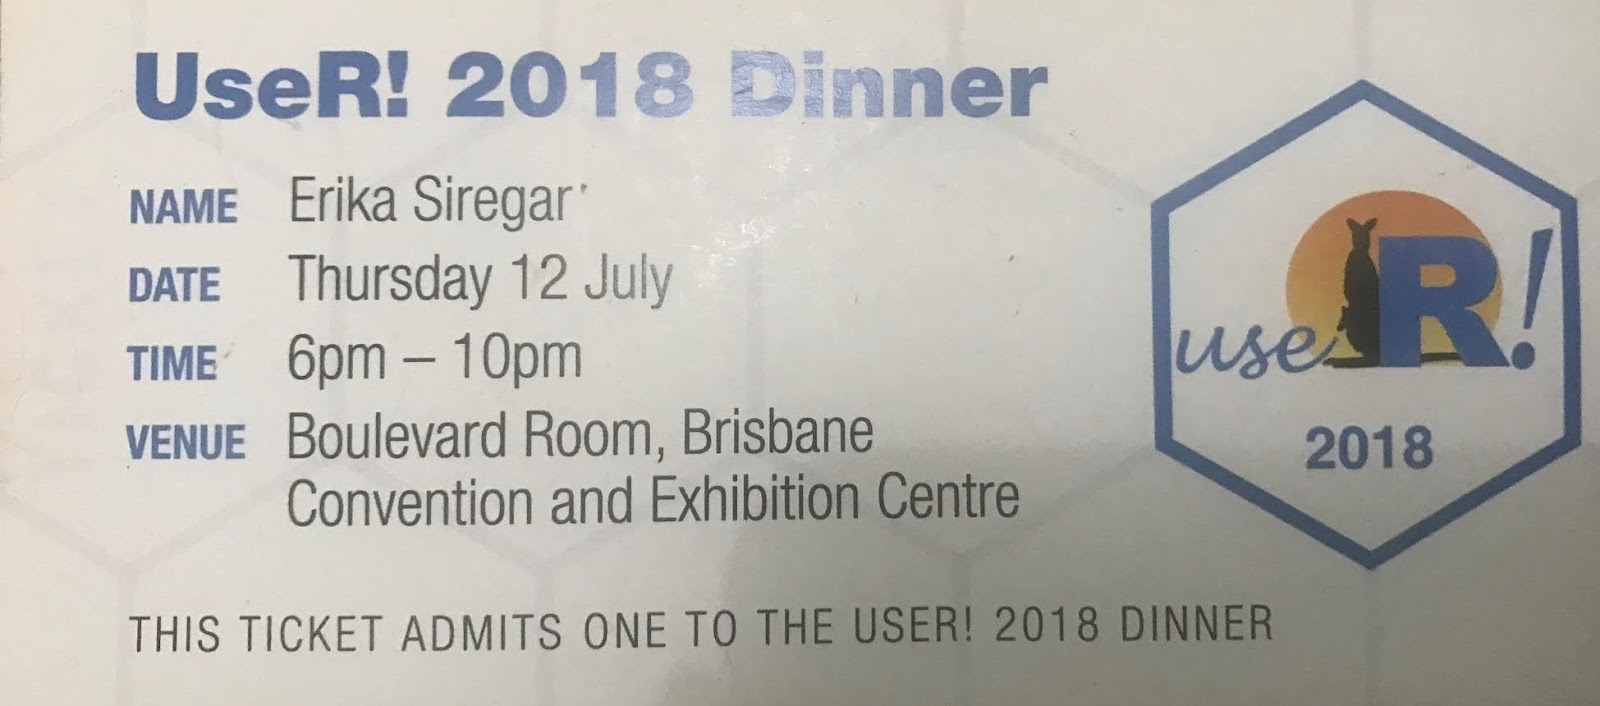 the conference dinner ticket